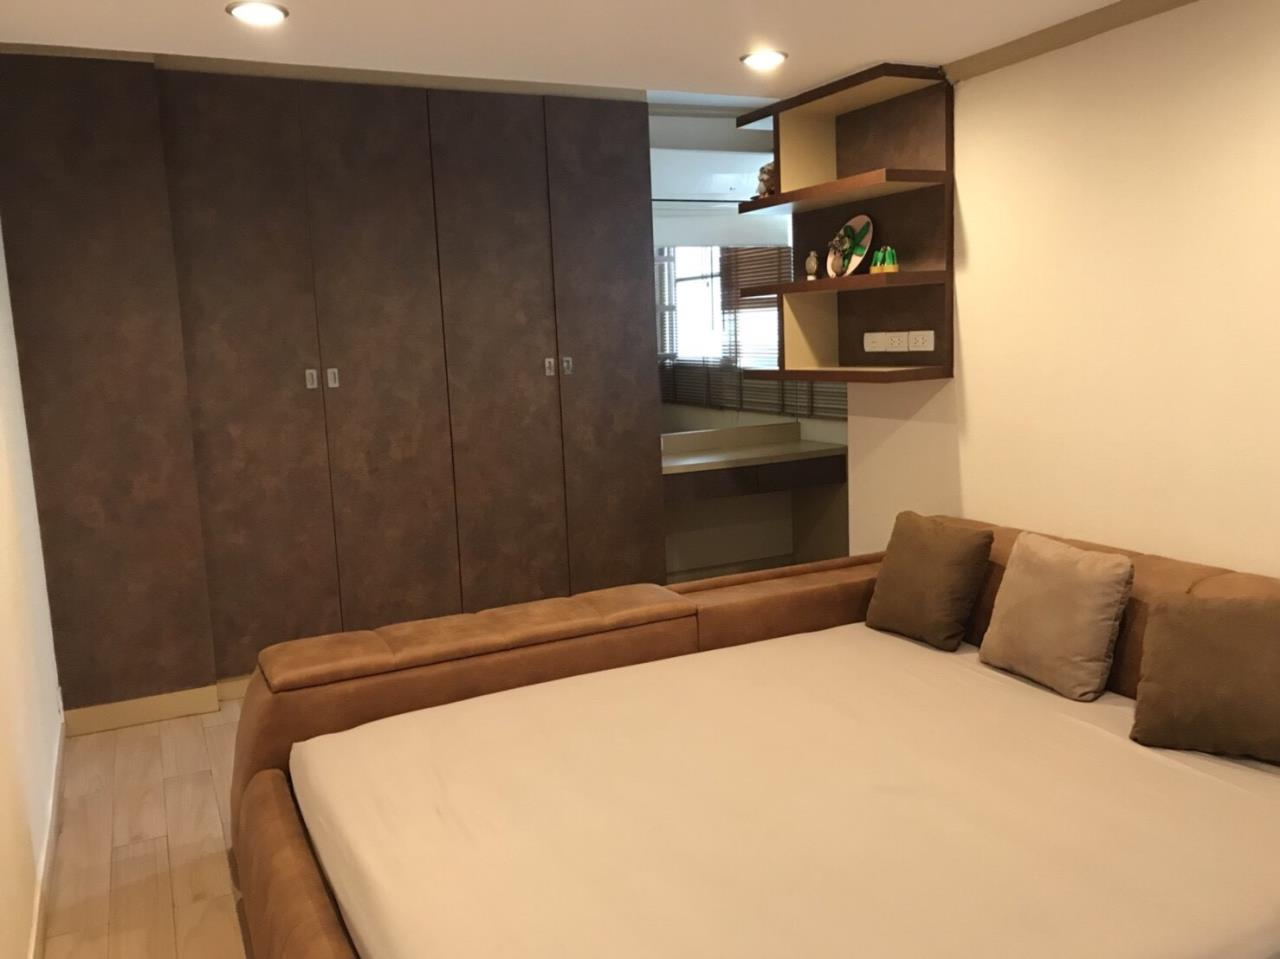 RE/MAX All Star Realty Agency's D.S. Tower 2 Sukhumvit 39 for rent 4